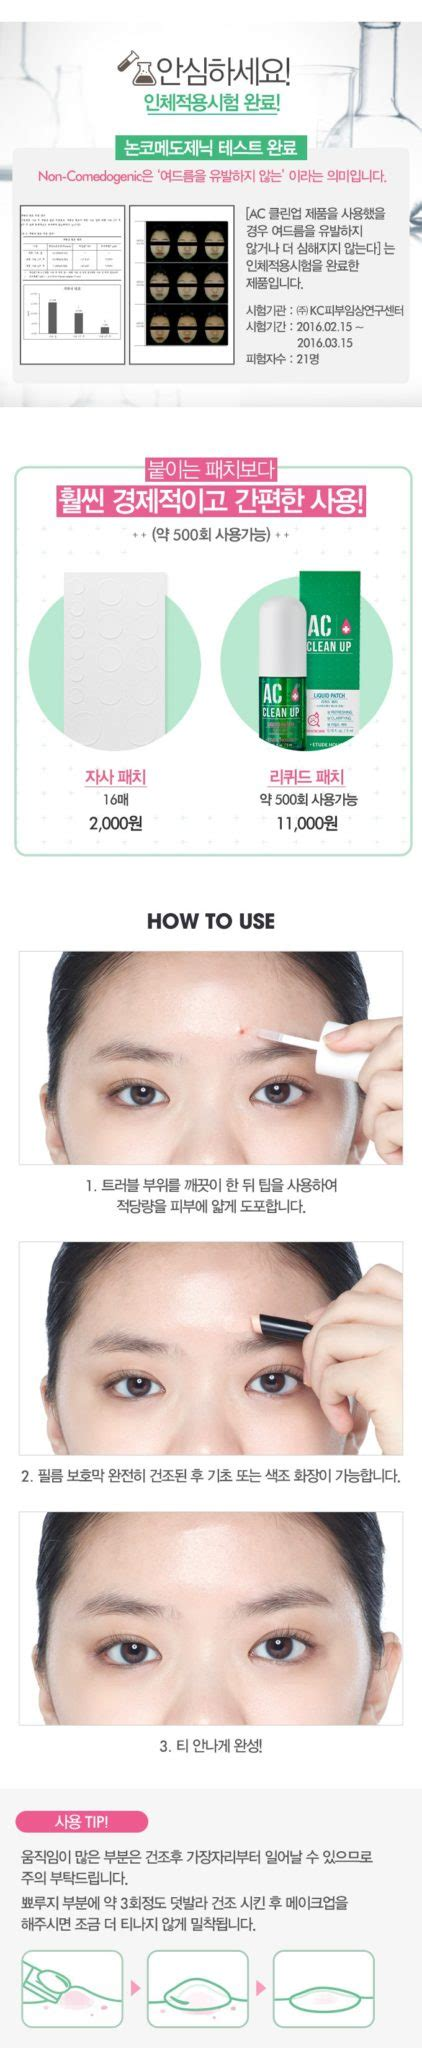 Etude House Ac Clean Up Liquid Patch 5ml 100 Original etude house ac clean up liquid patch special skin care